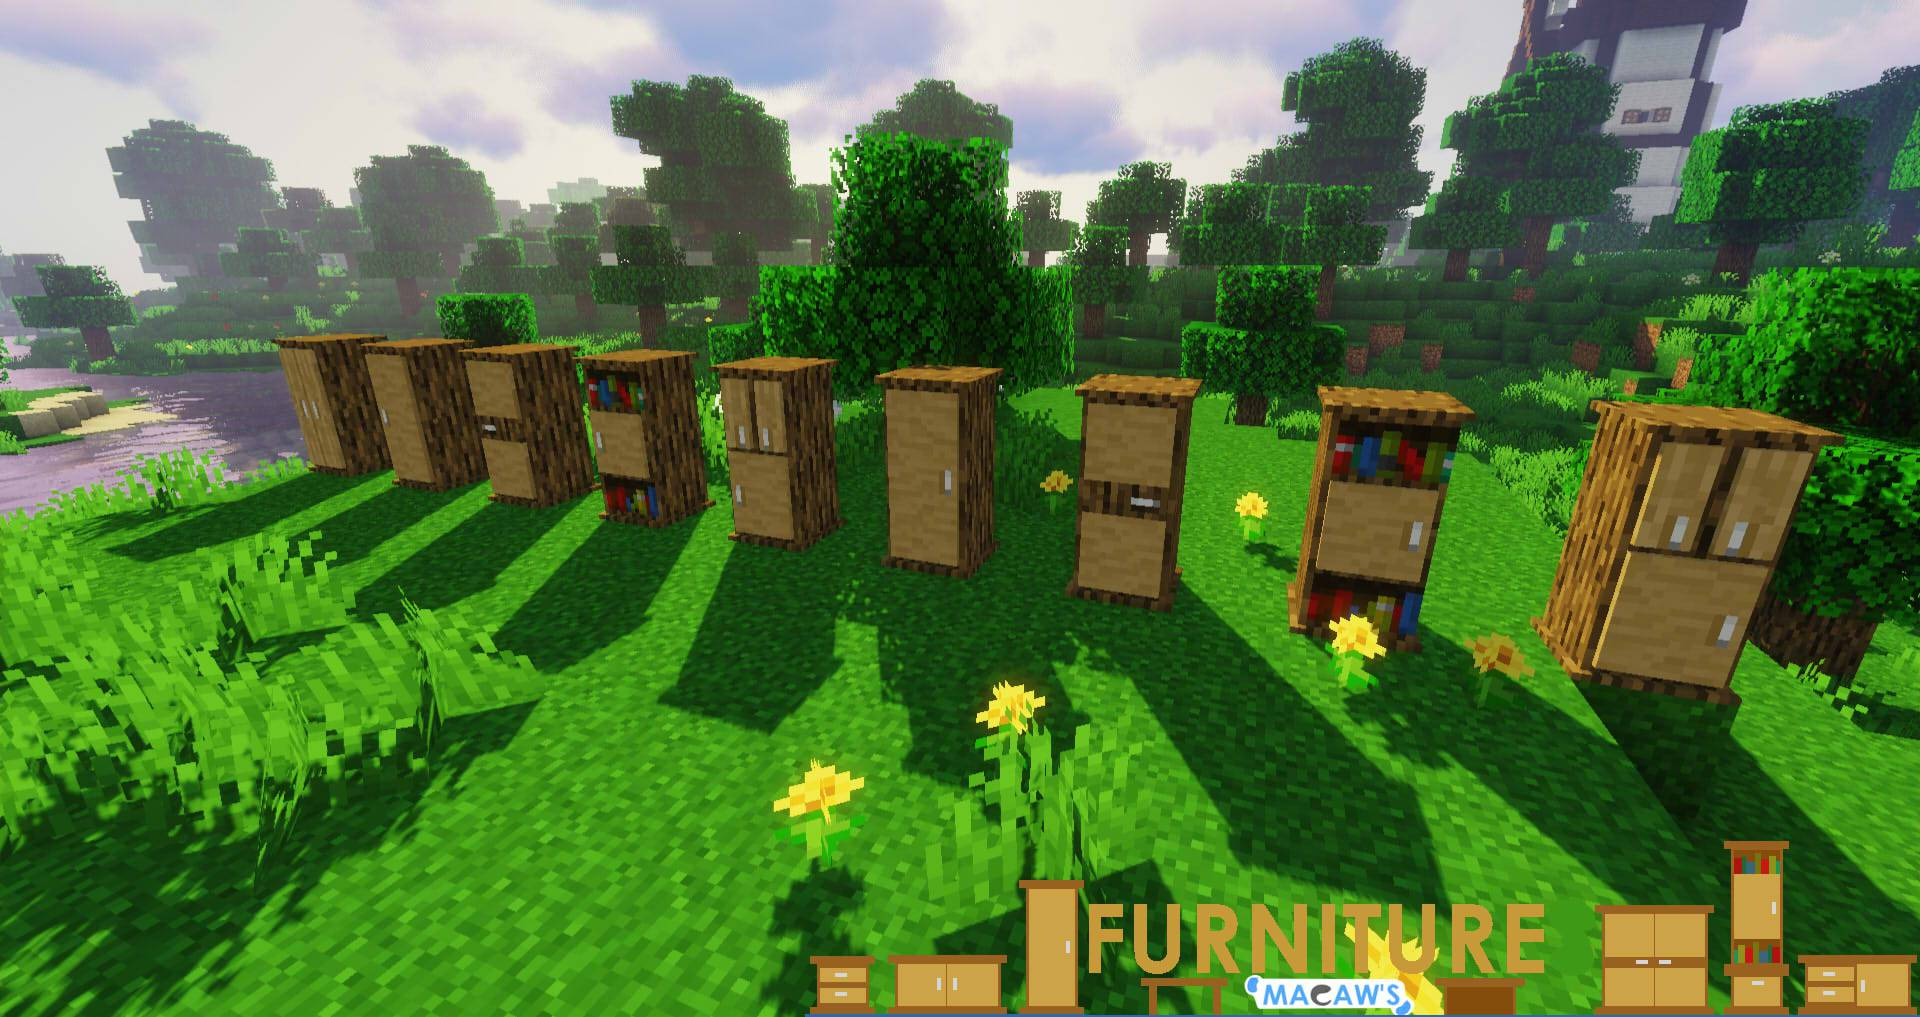 Macaw_s Furniture mod for minecraft 23